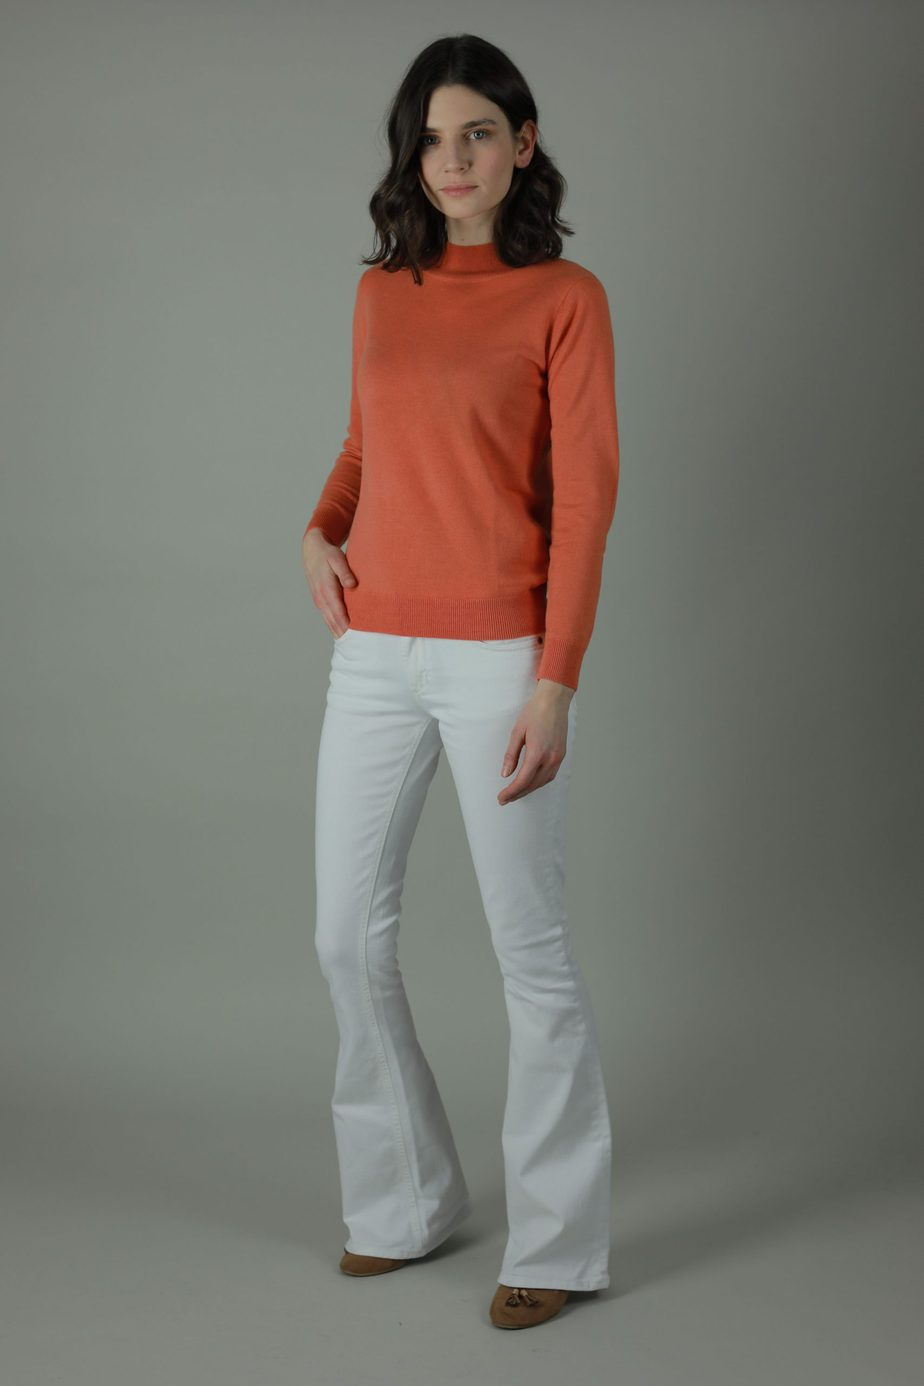 Bring back the retro with our Alia Florence Flare jean. Summer style to Christmas casual the Alia Florence travels light and wears comfortably. Front view.